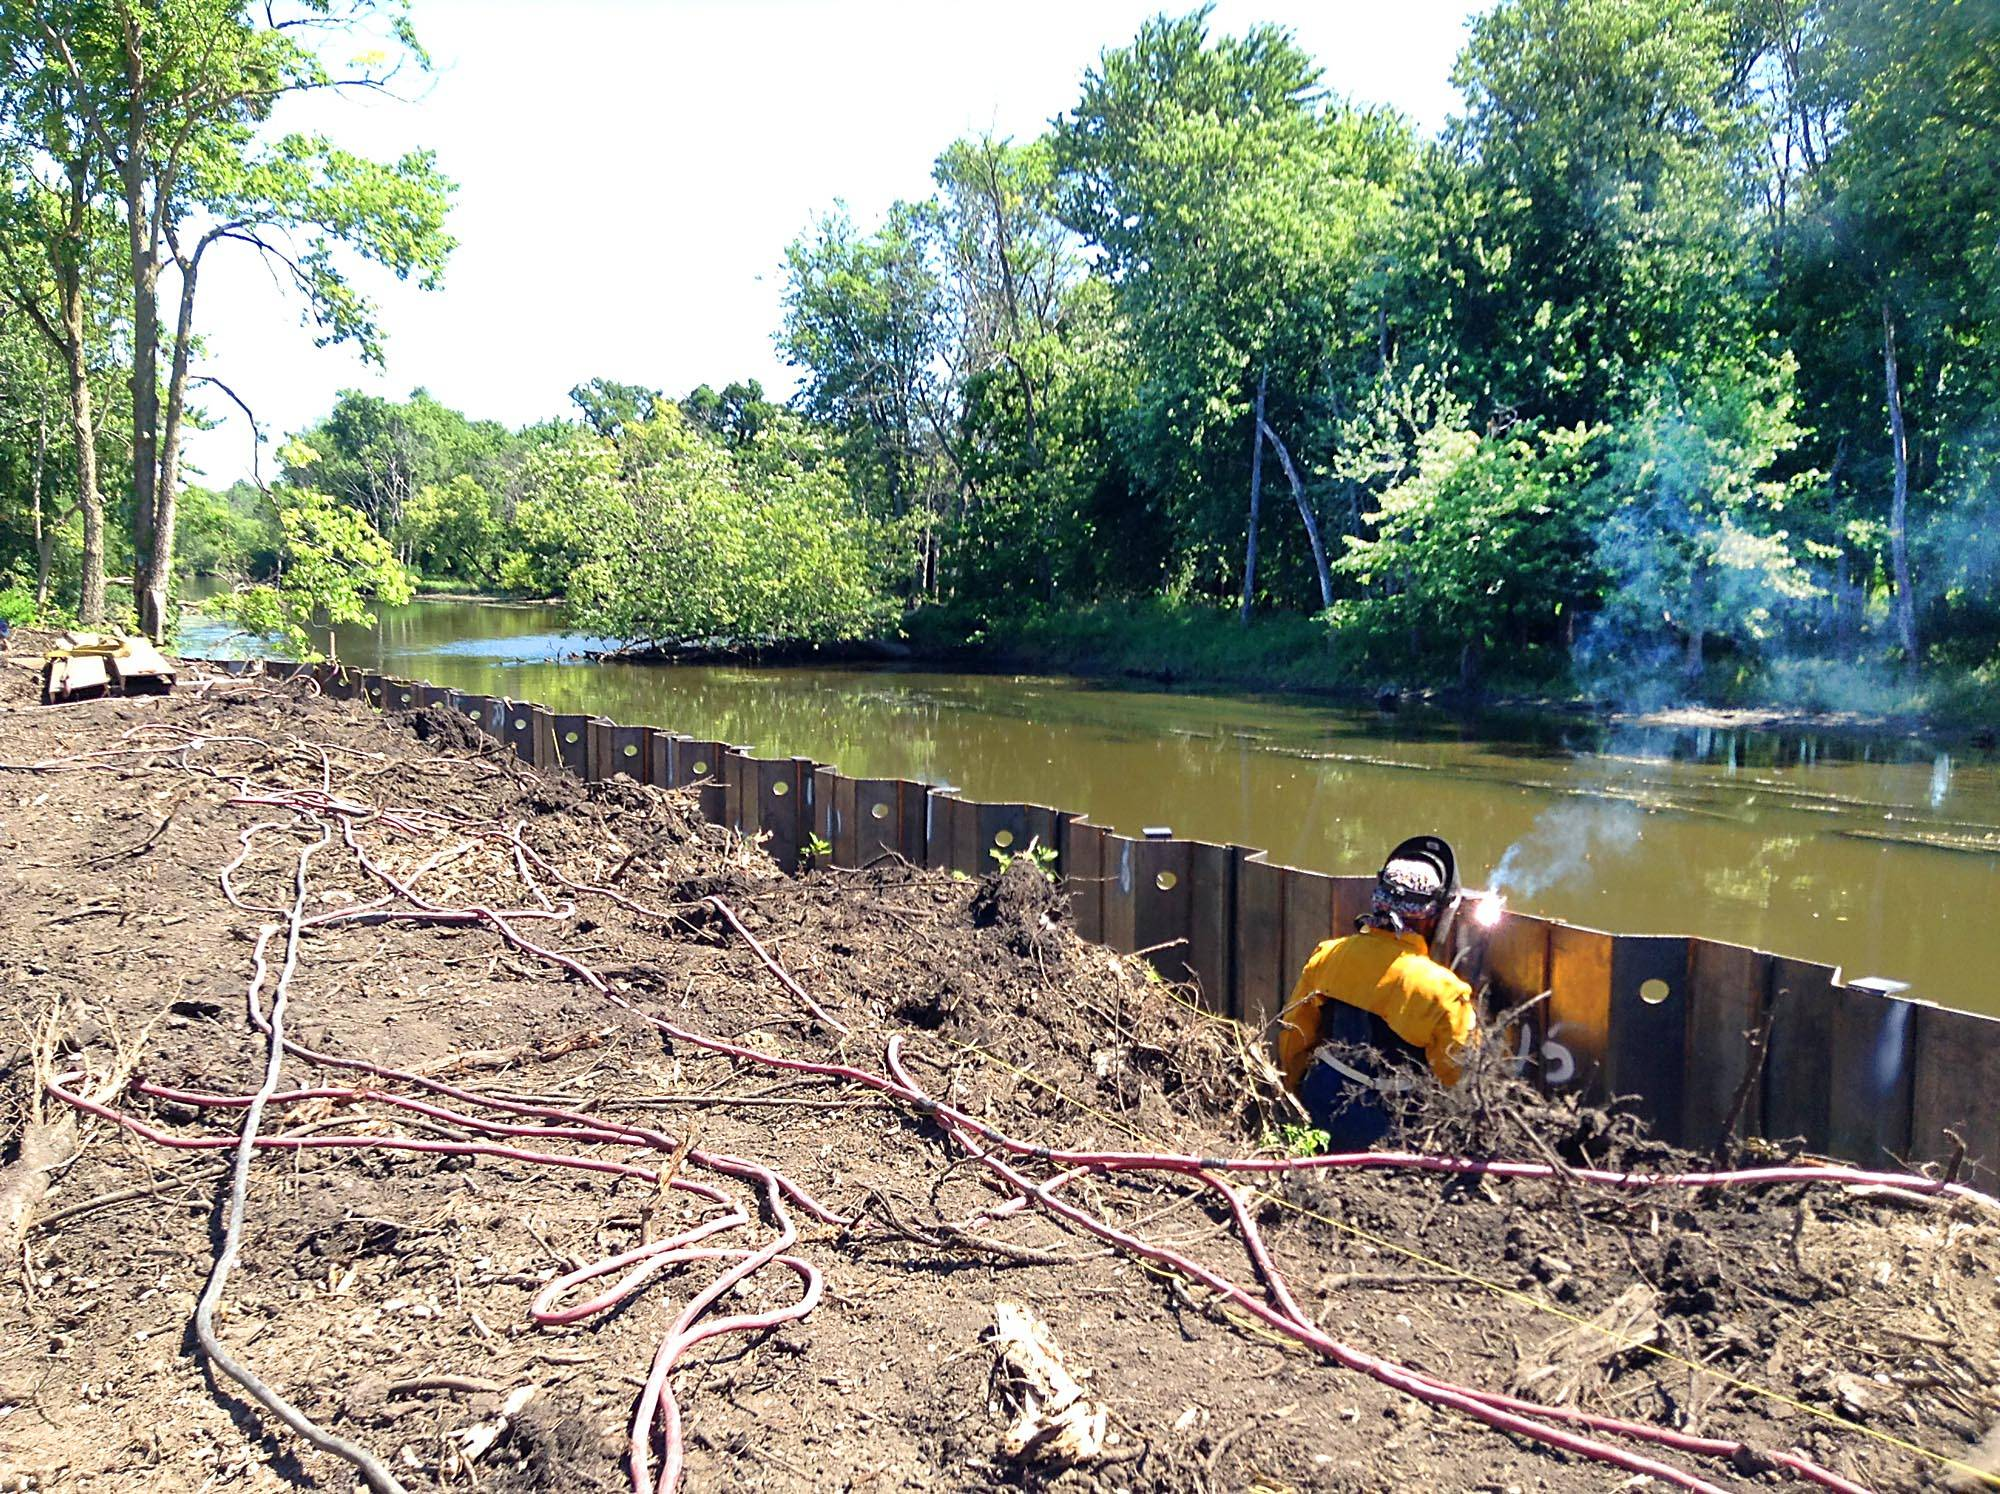 A welder works on a retaining wall as part of a project to close the last gap on the Des Plaines River Trail.